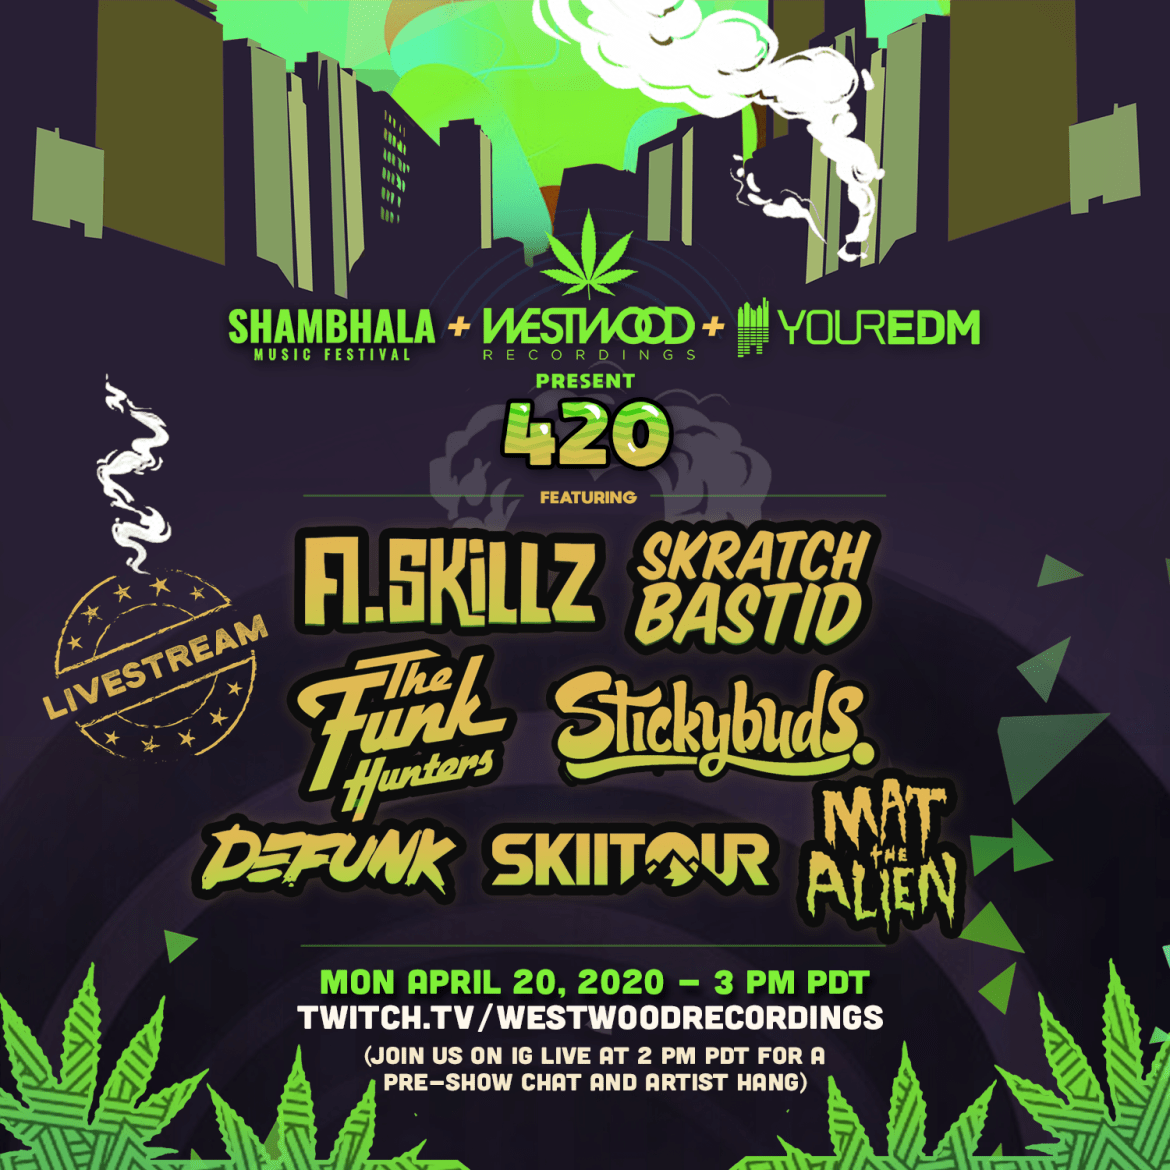 SHAMBHALA MUSIC FESTIVAL, WESTWOOD RECORDINGS AND YOUR EDM DROP HUGE 420 LIVE STREAMING EVENT